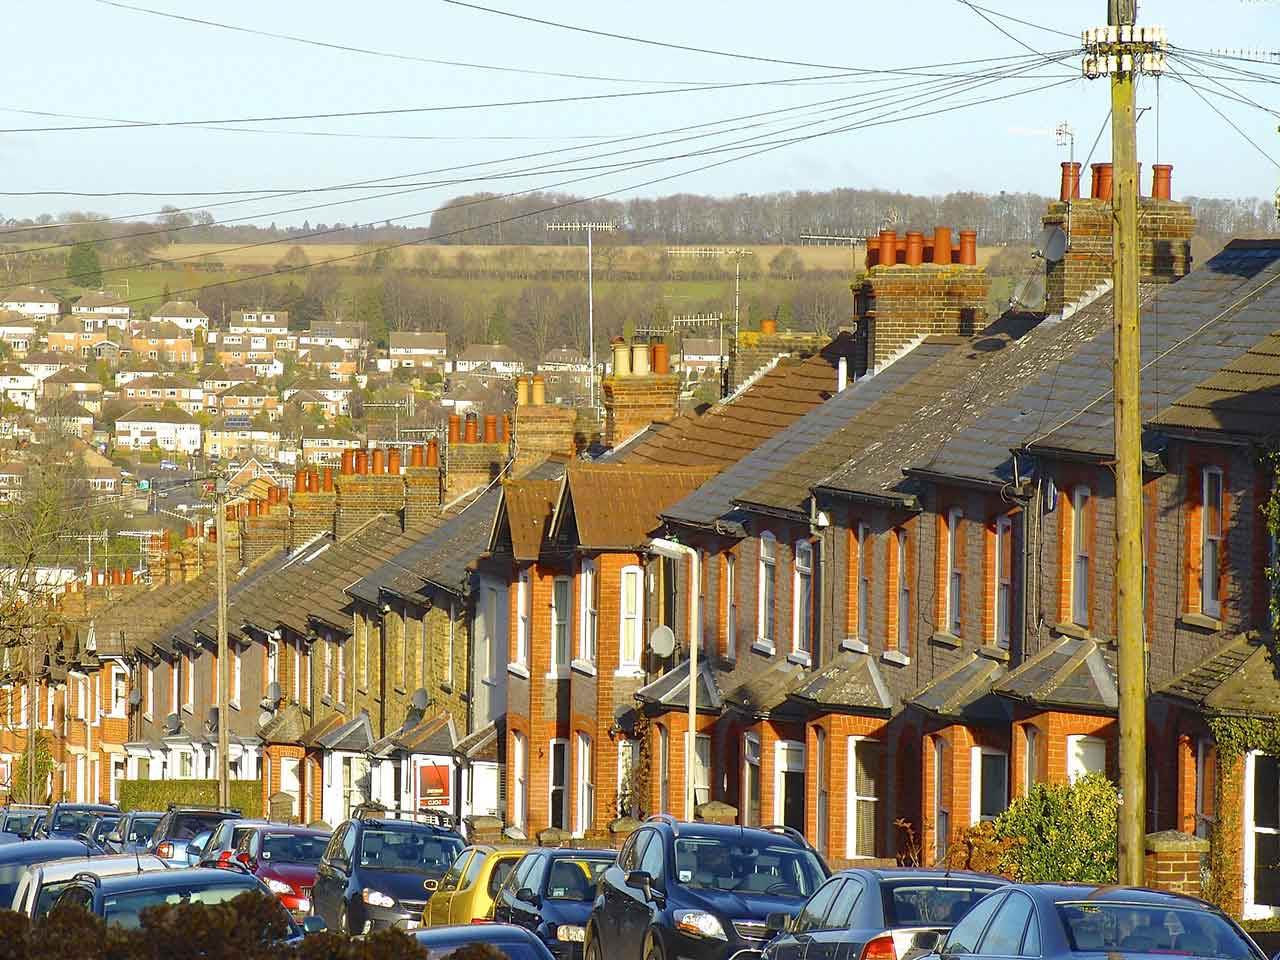 Block of terraced houses